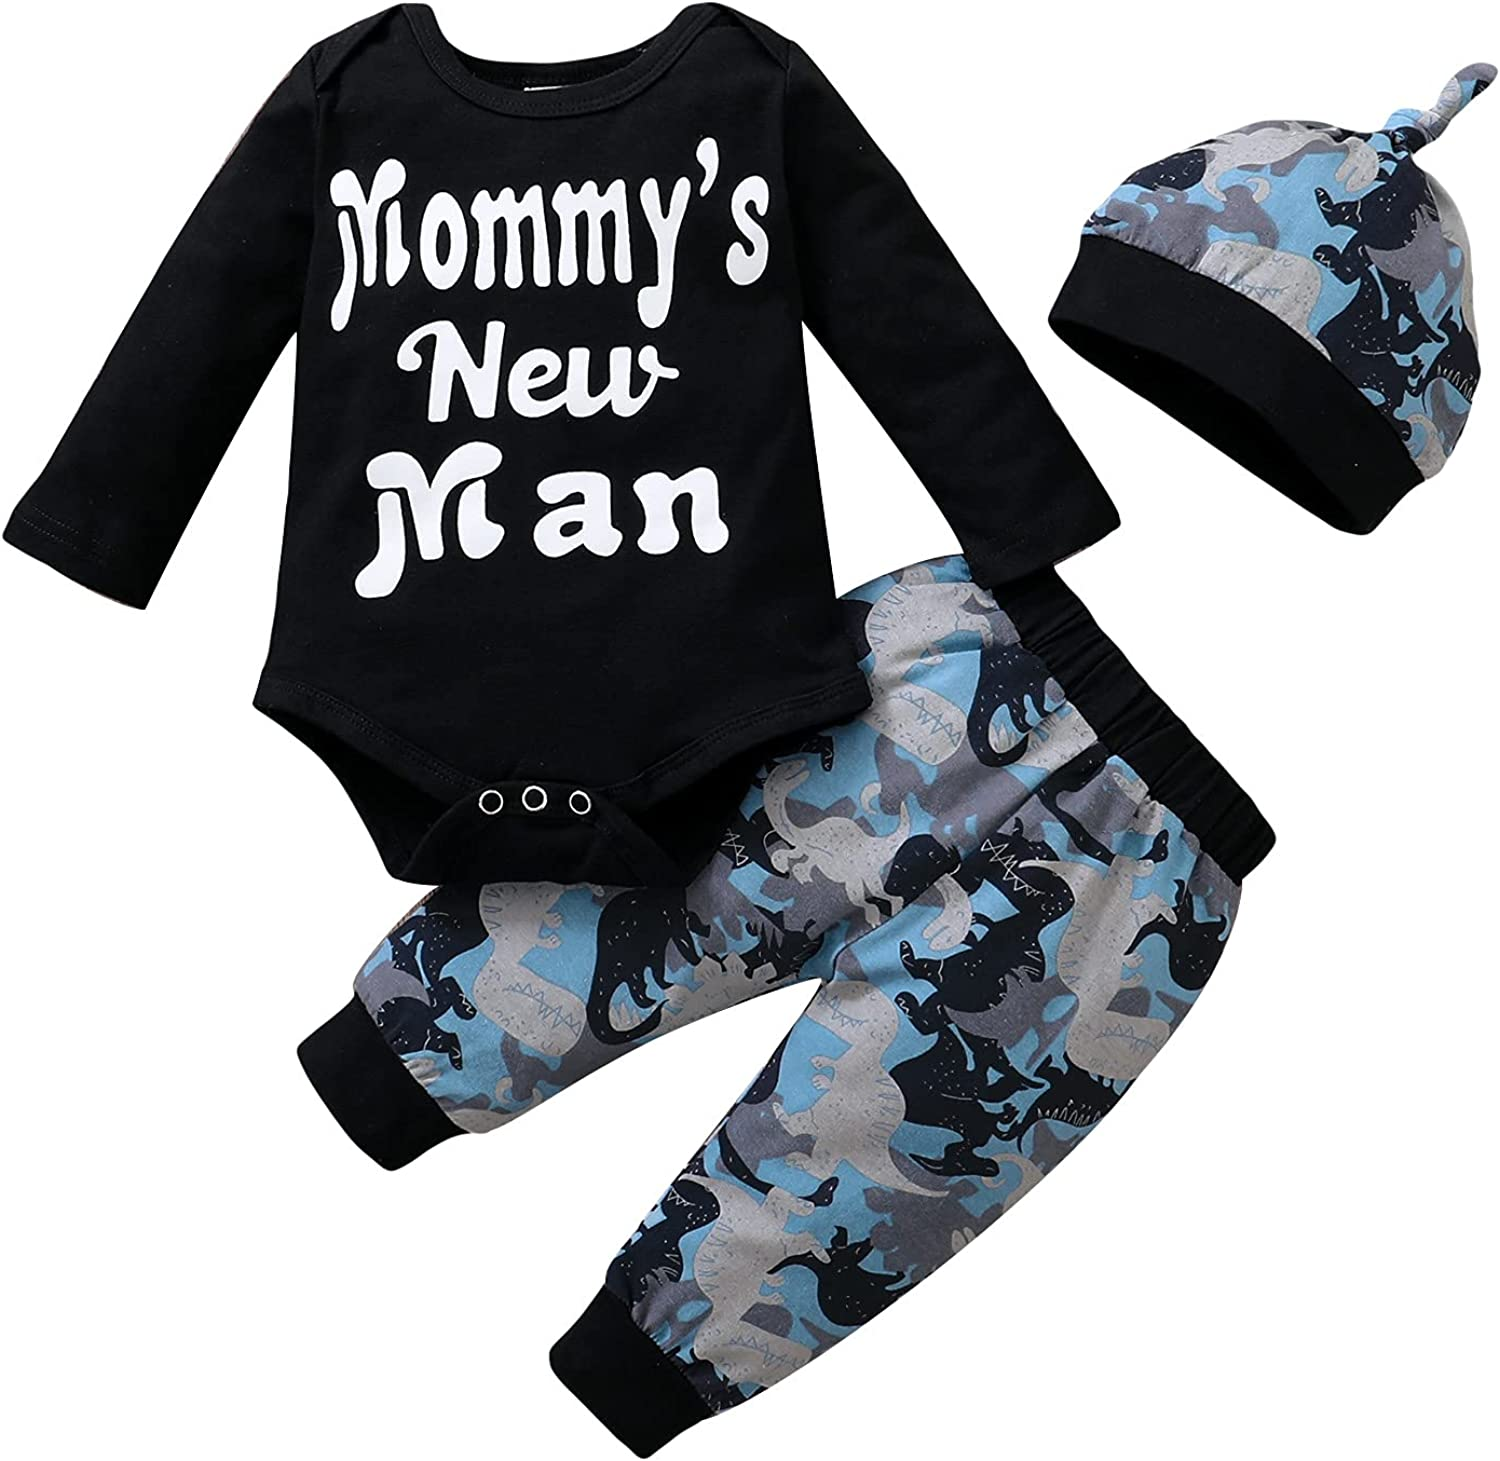 Newborn Baby Boy Clothes Letter Print Long Sleeve Romper Bodysuit + Long Pants Fall Winter Outfits Set